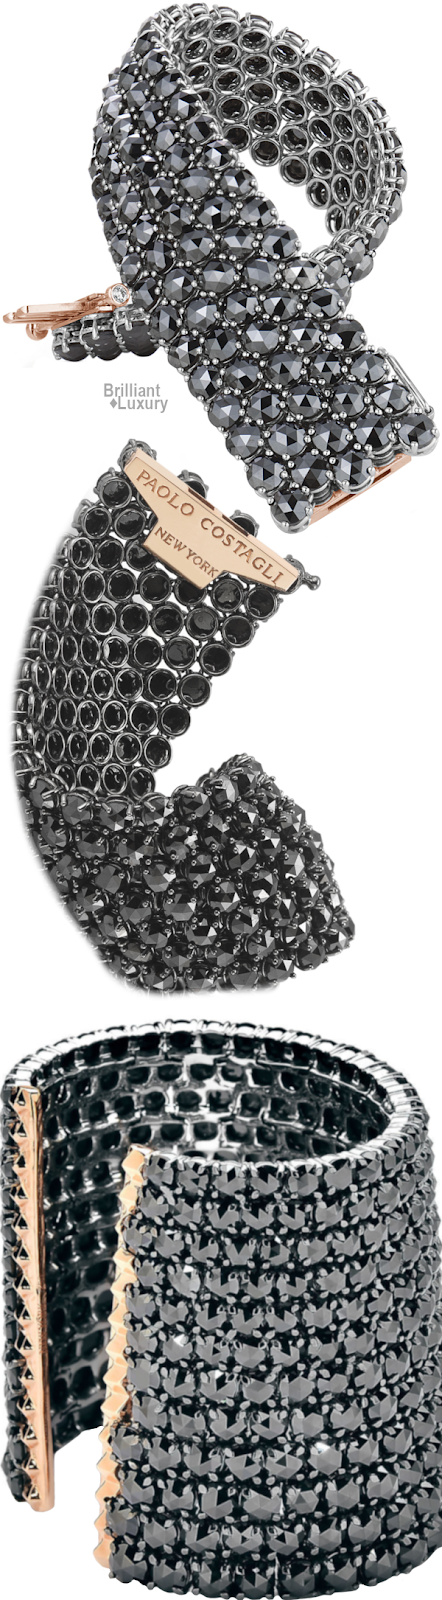 Brilliant Luxury♦Paolo Costagli Black Diamond Bracelet And Cuff With High Polish Rose Gold Detailing And Titanium Technology